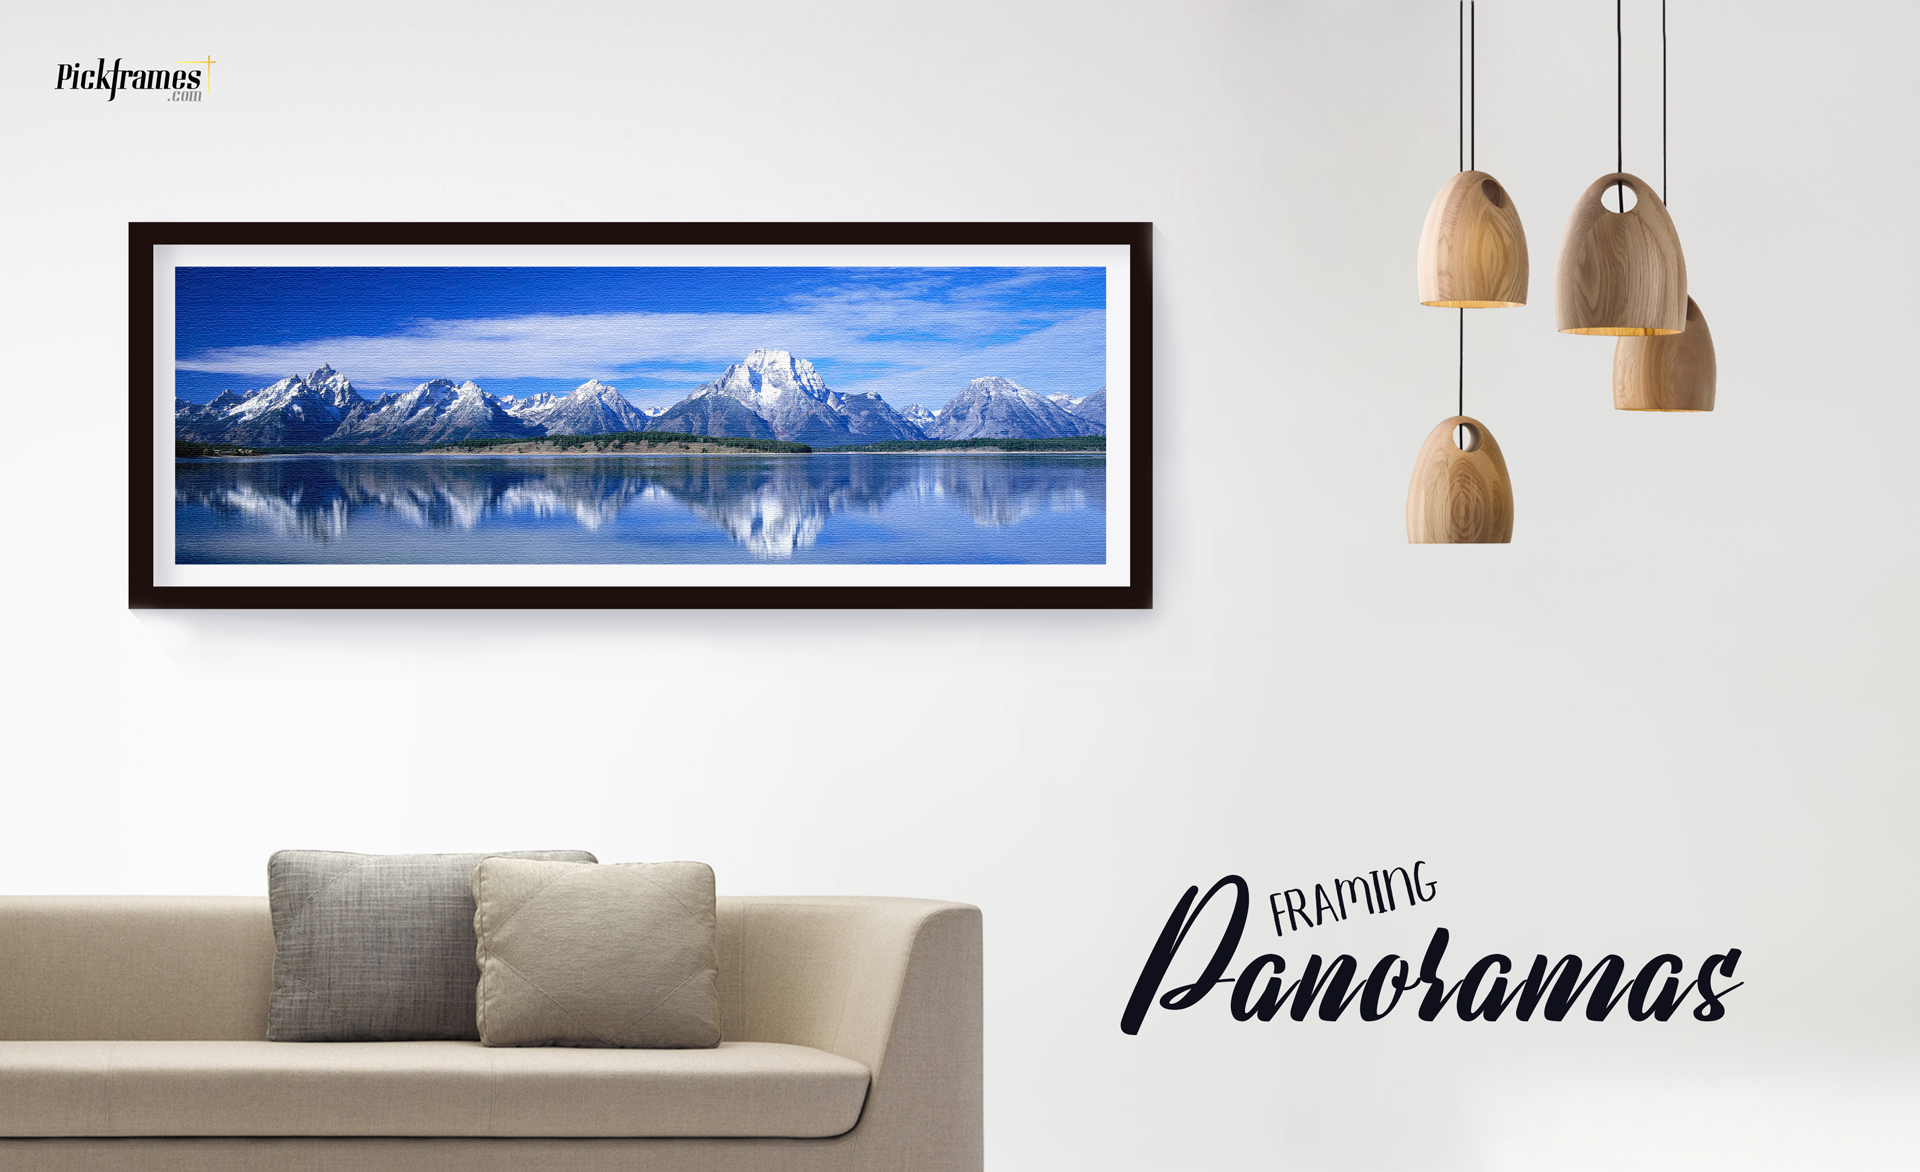 frame panoramic photos with pickframes frames in dubai